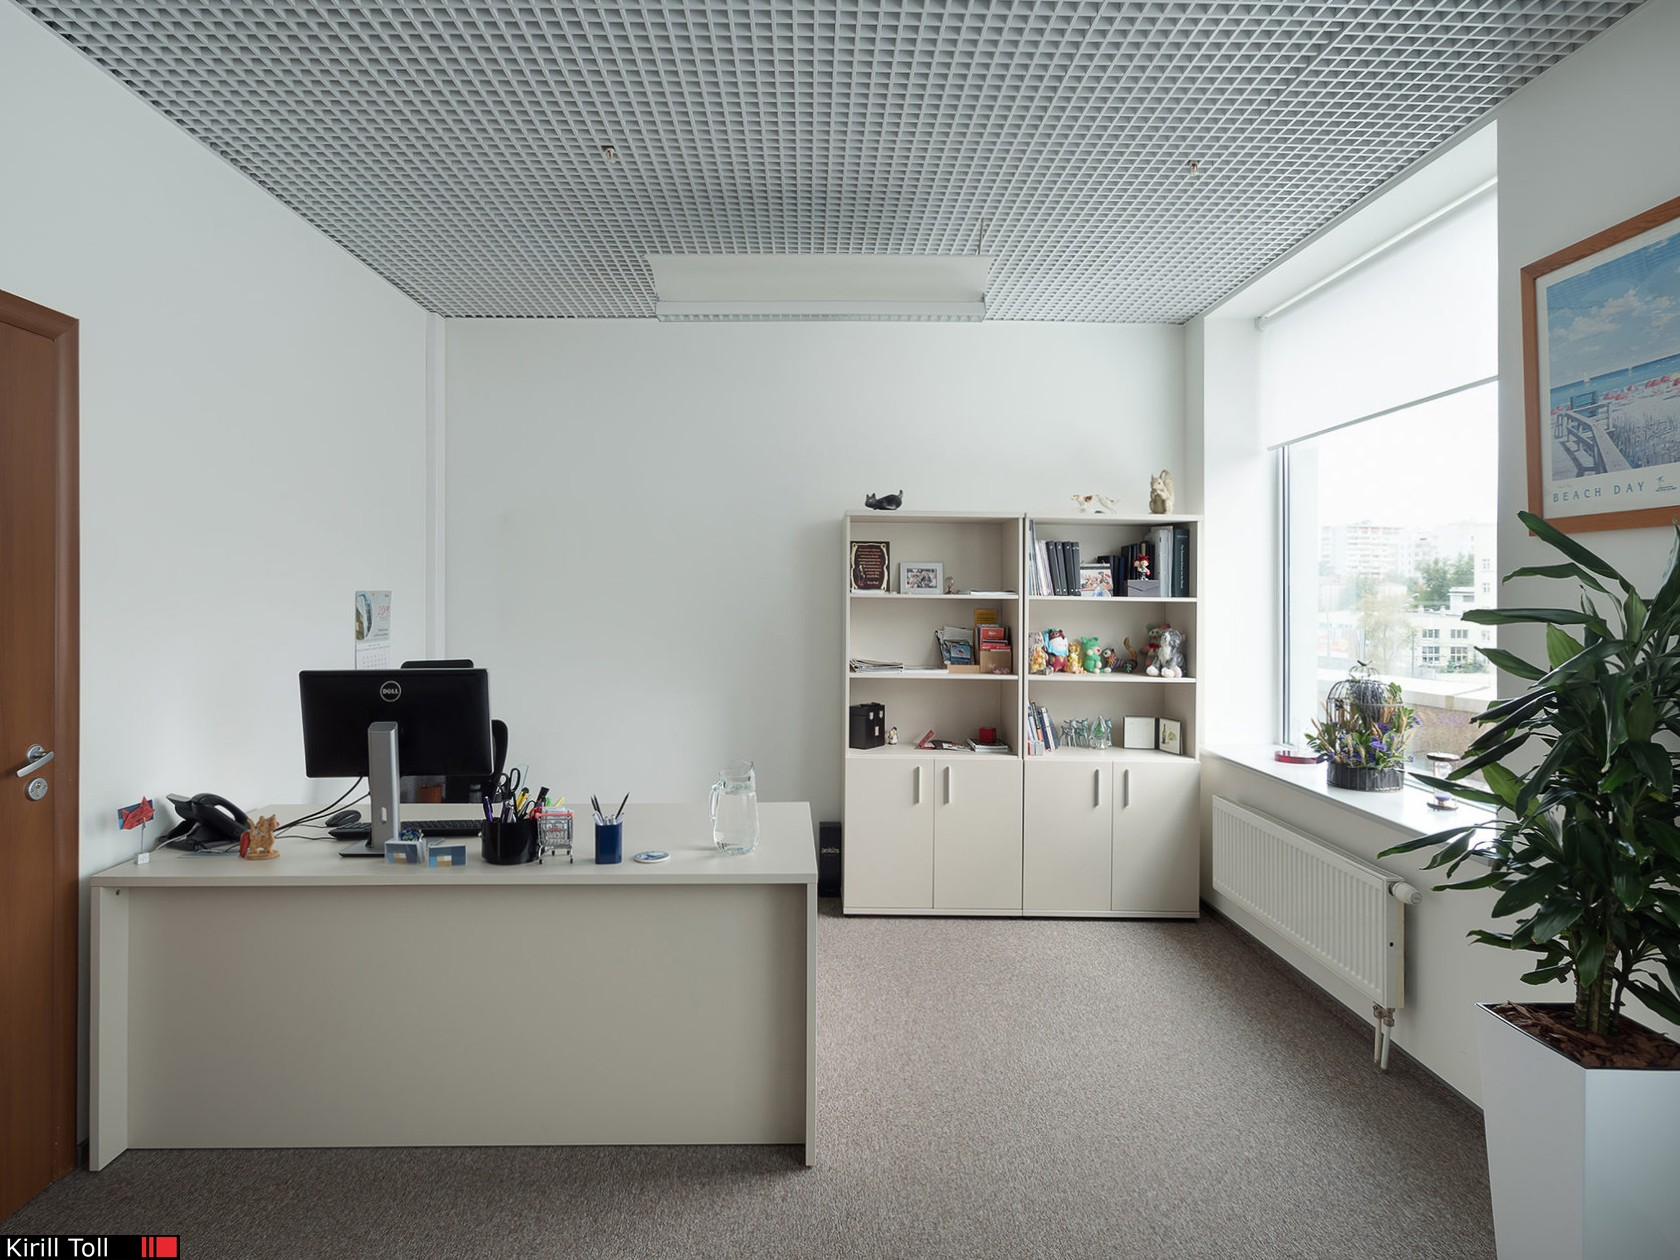 Office interiors with furniture. Photos for presentations in the photographer's gallery